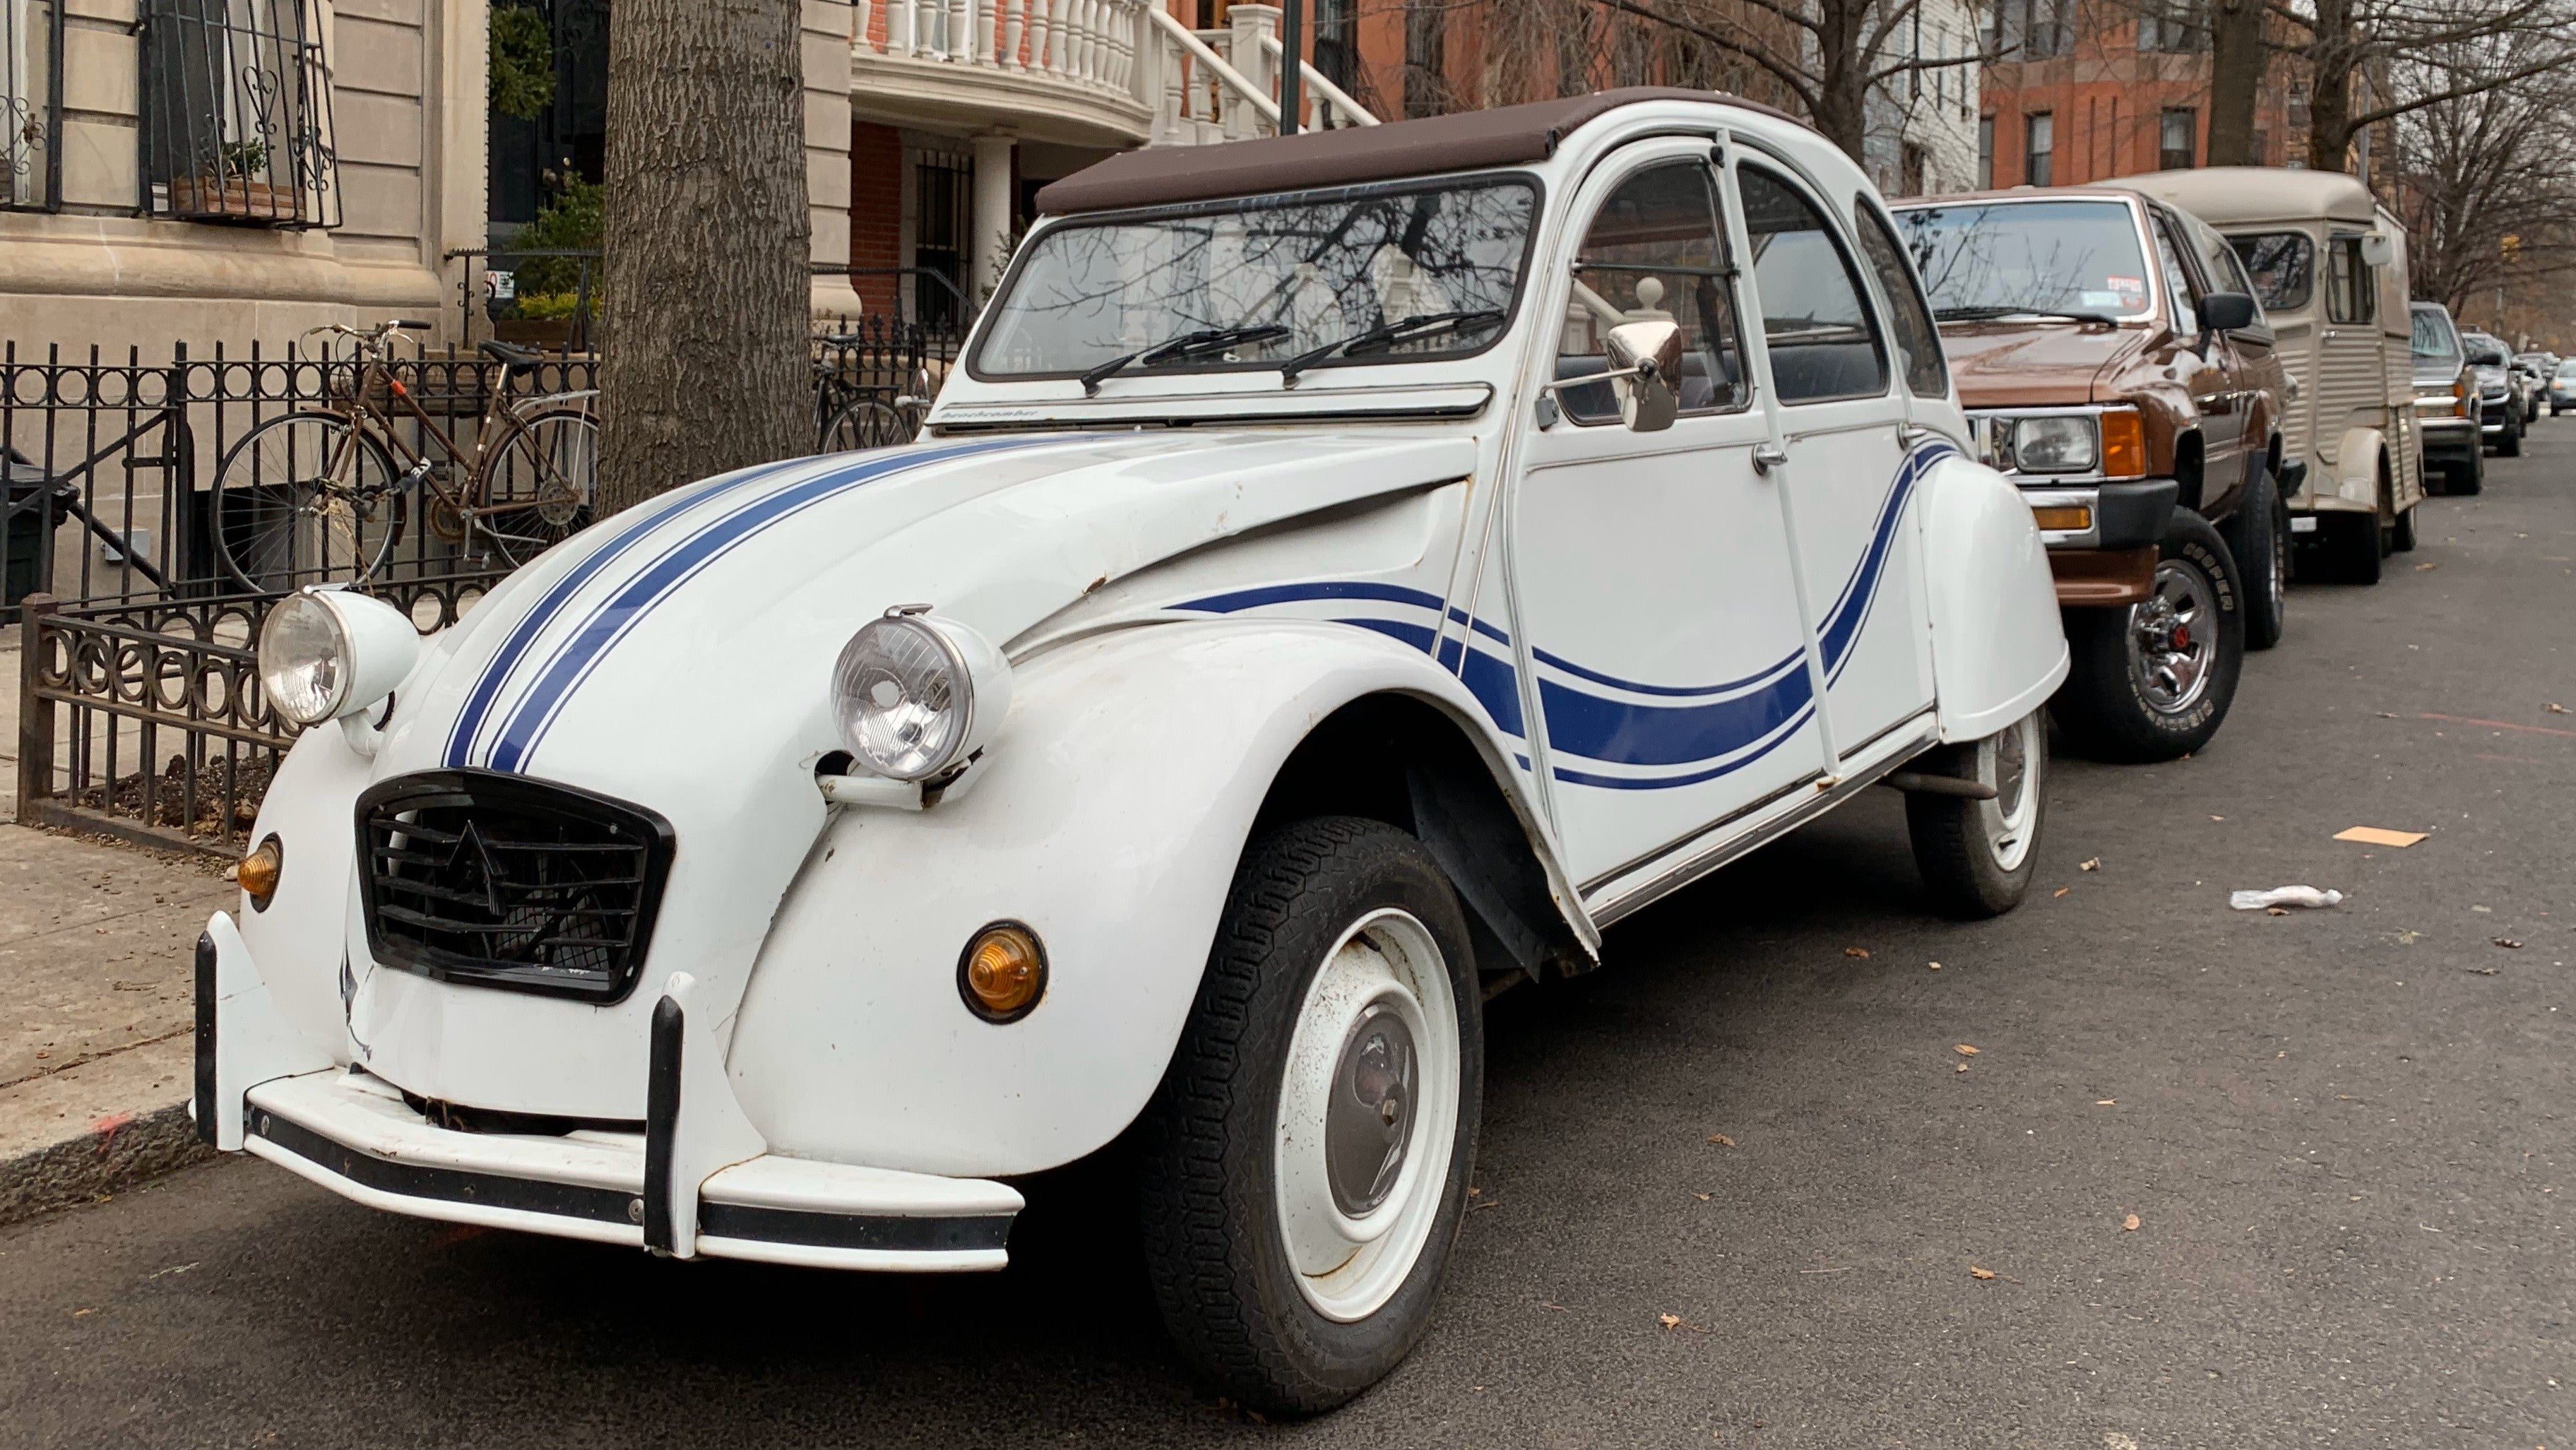 These Citroëns Sitting In Brooklyn No Doubt Have Stories To Tell